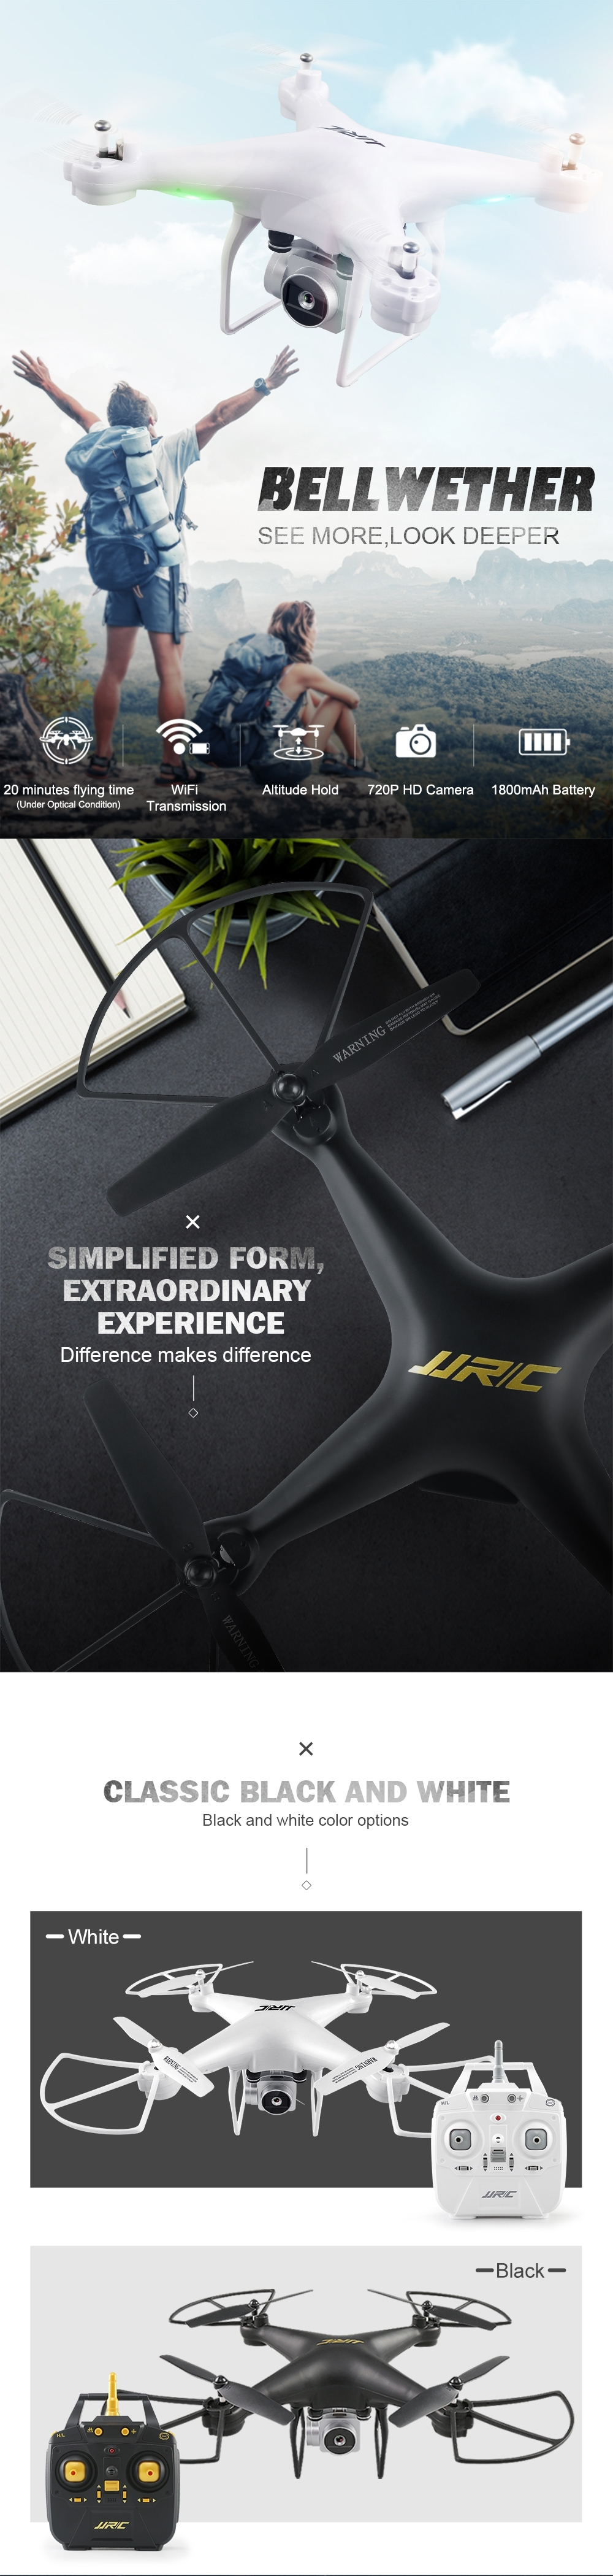 JJRC H68 Bellwether WiFi FPV with 2MP 720P HD Camera 20mins Flight Time RC Drone Quadcopter RTF